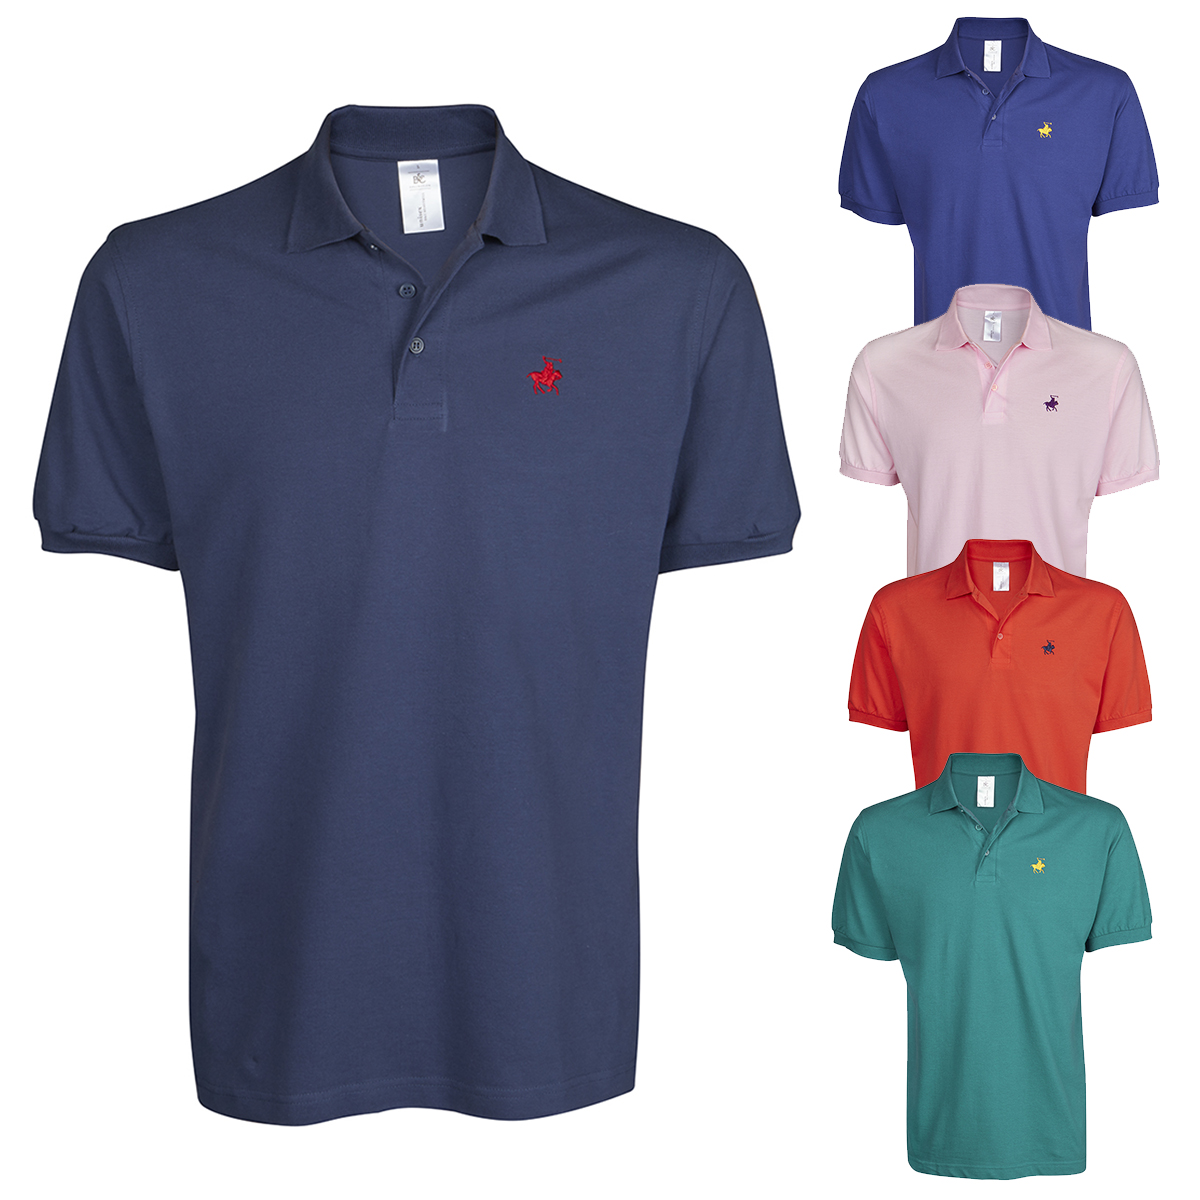 Mens Polo Shirt Cotton Short Sleeve Designer Top Horse